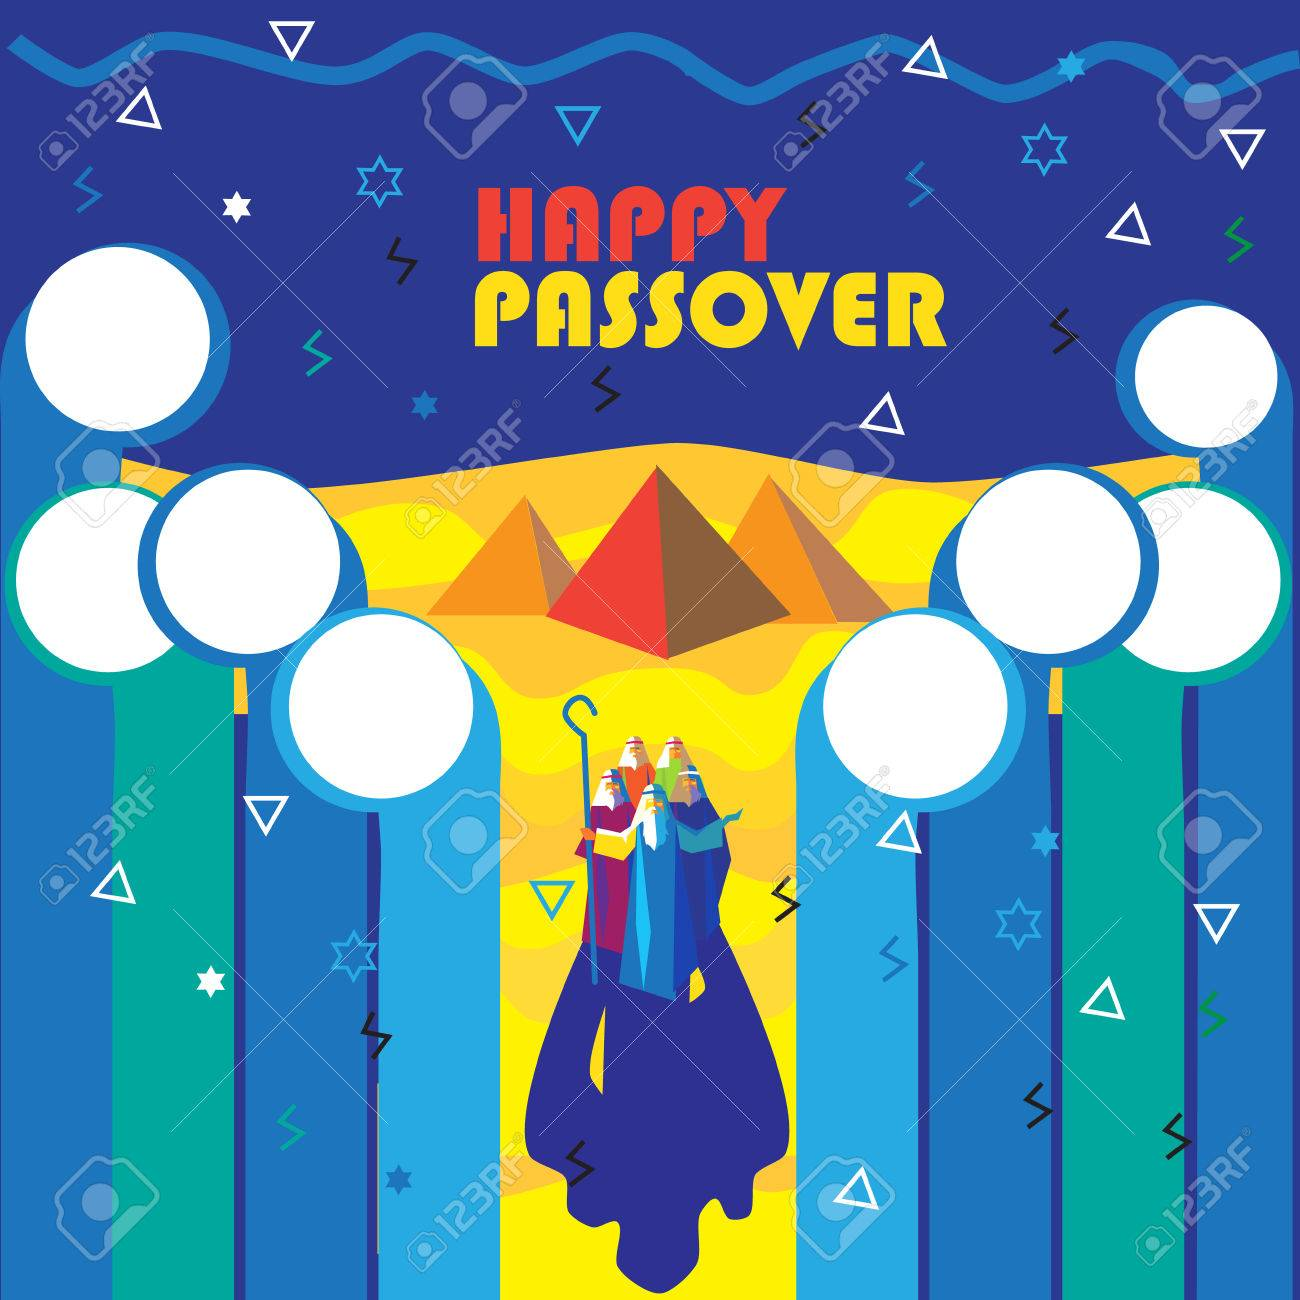 Happy Passover Wallpaper Spring Festival Abstract Modern Art Painting Jewish Holiday Poster With